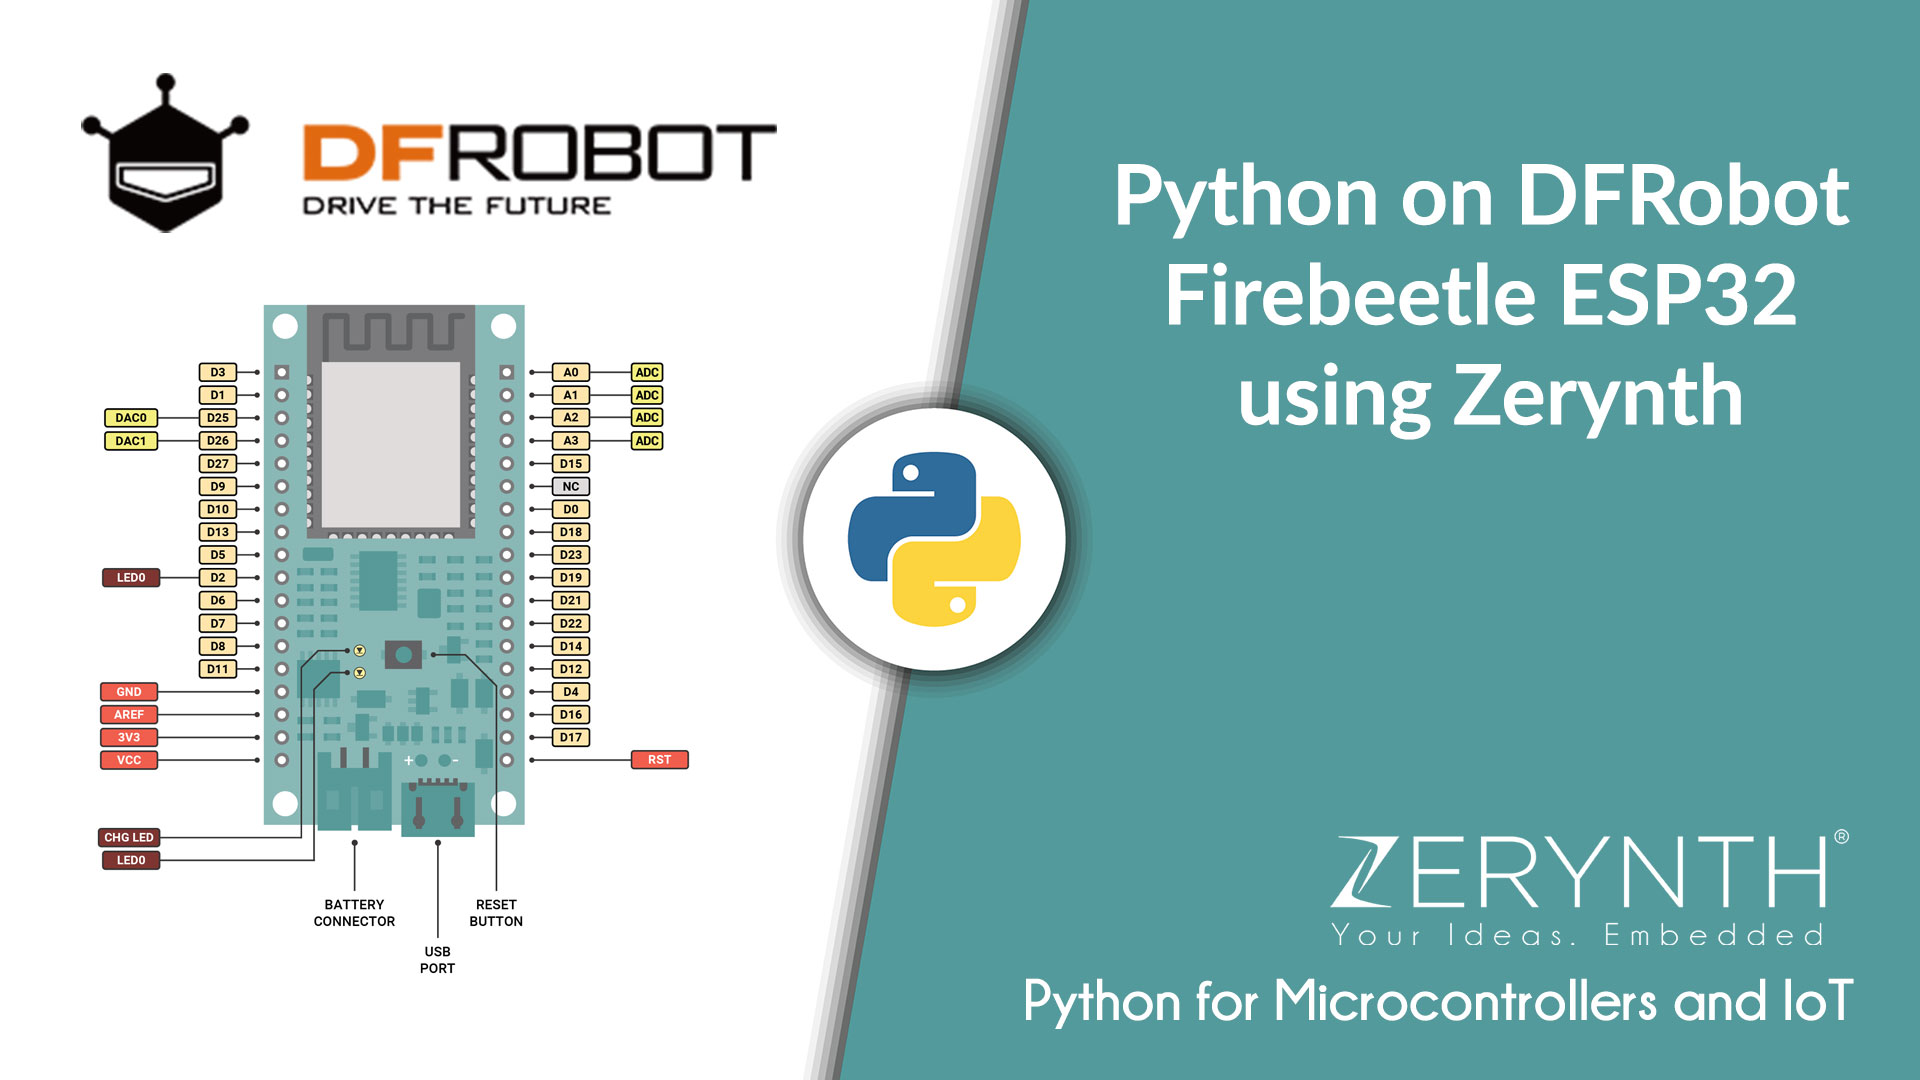 Python on DFRobot FireBeetle ESP32 using Zerynth